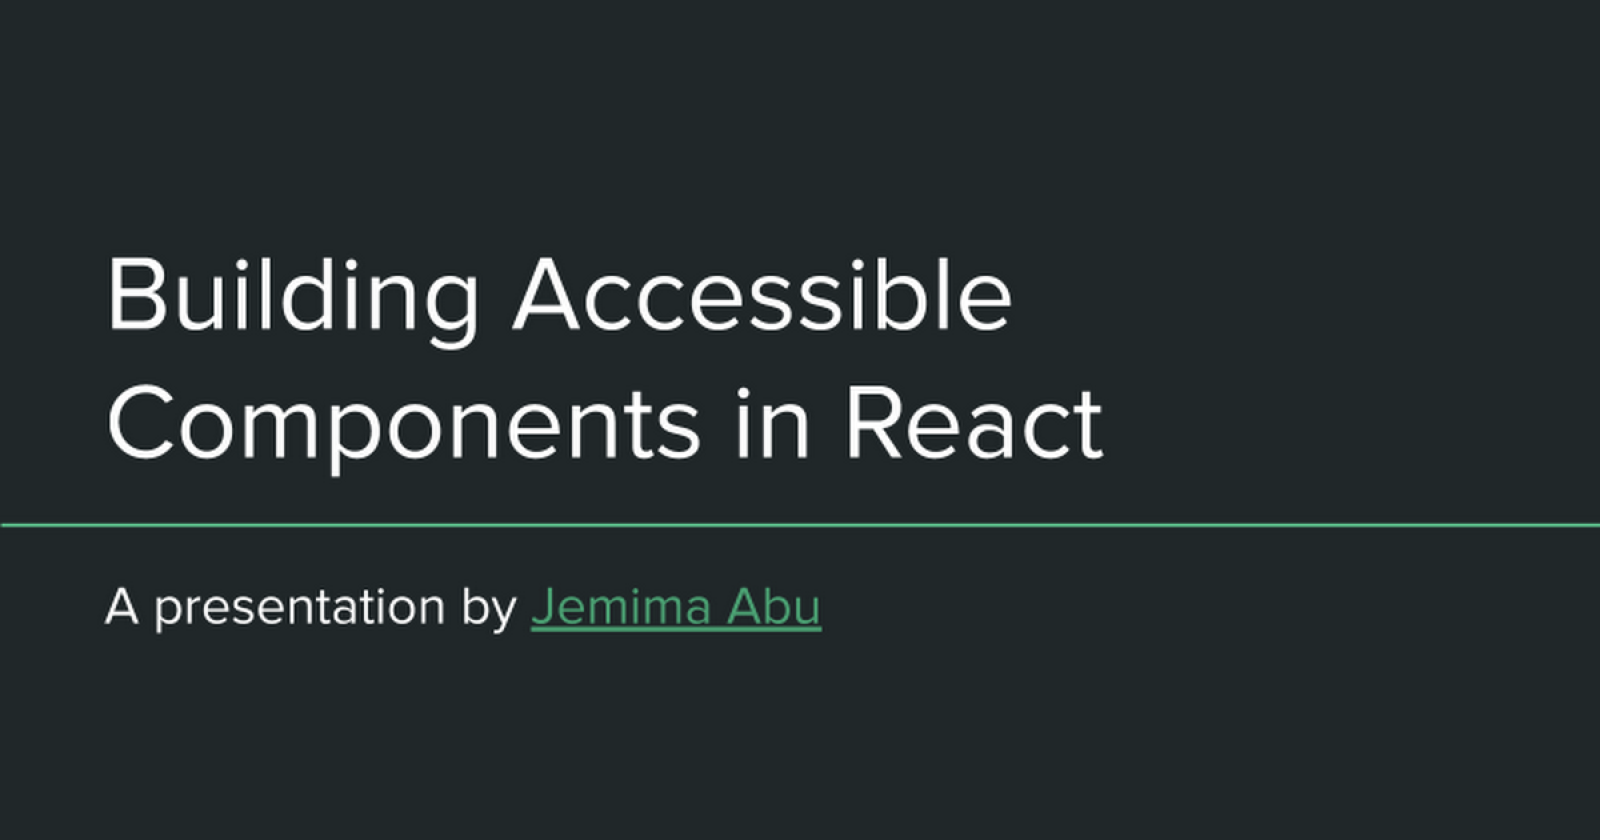 Building Accessible Components in React